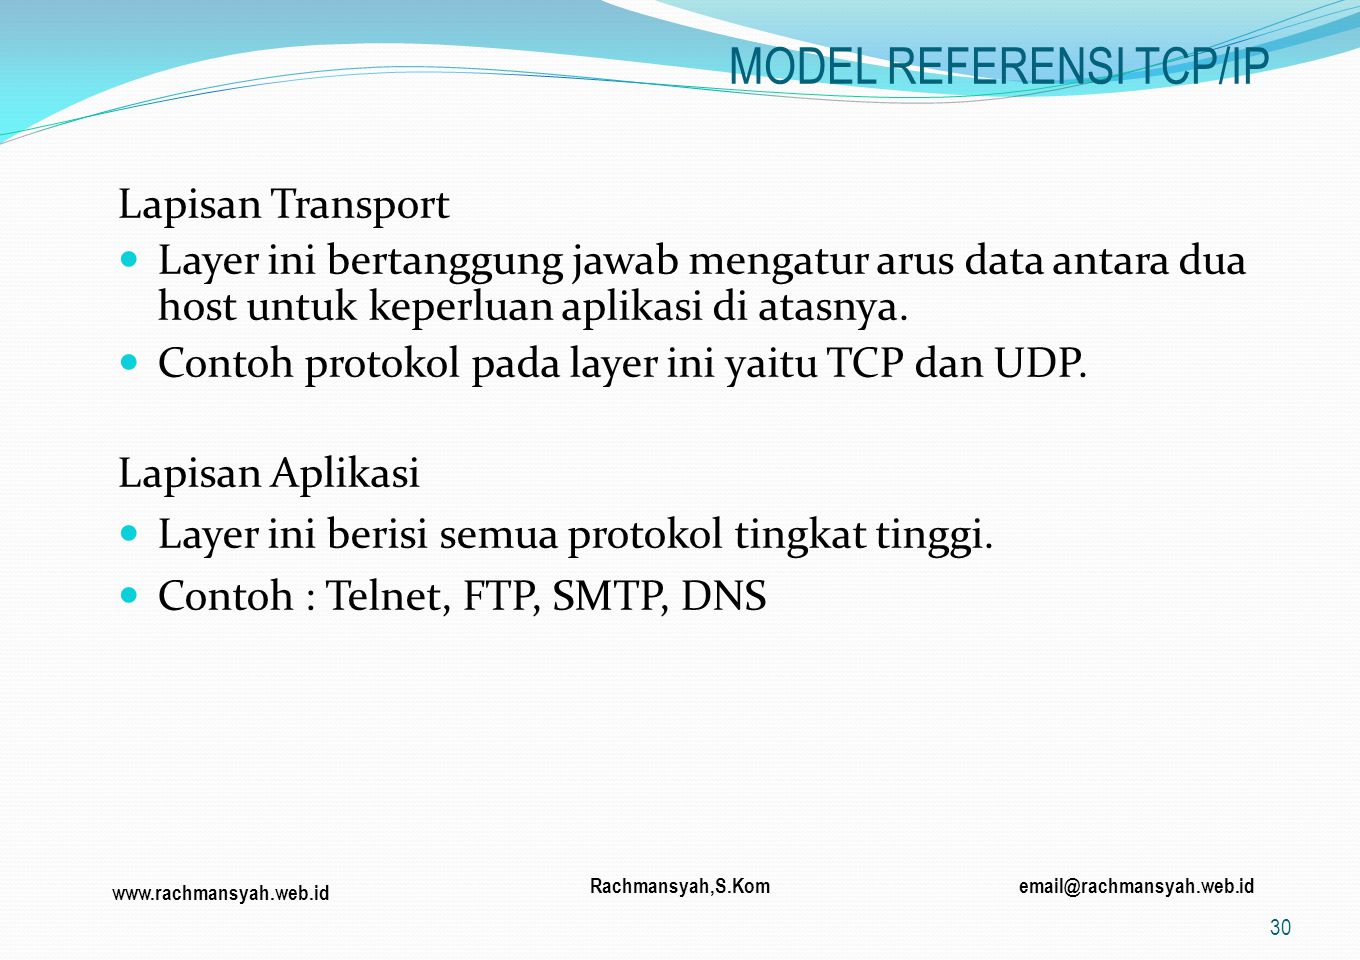 MODEL REFERENSI TCP/IP